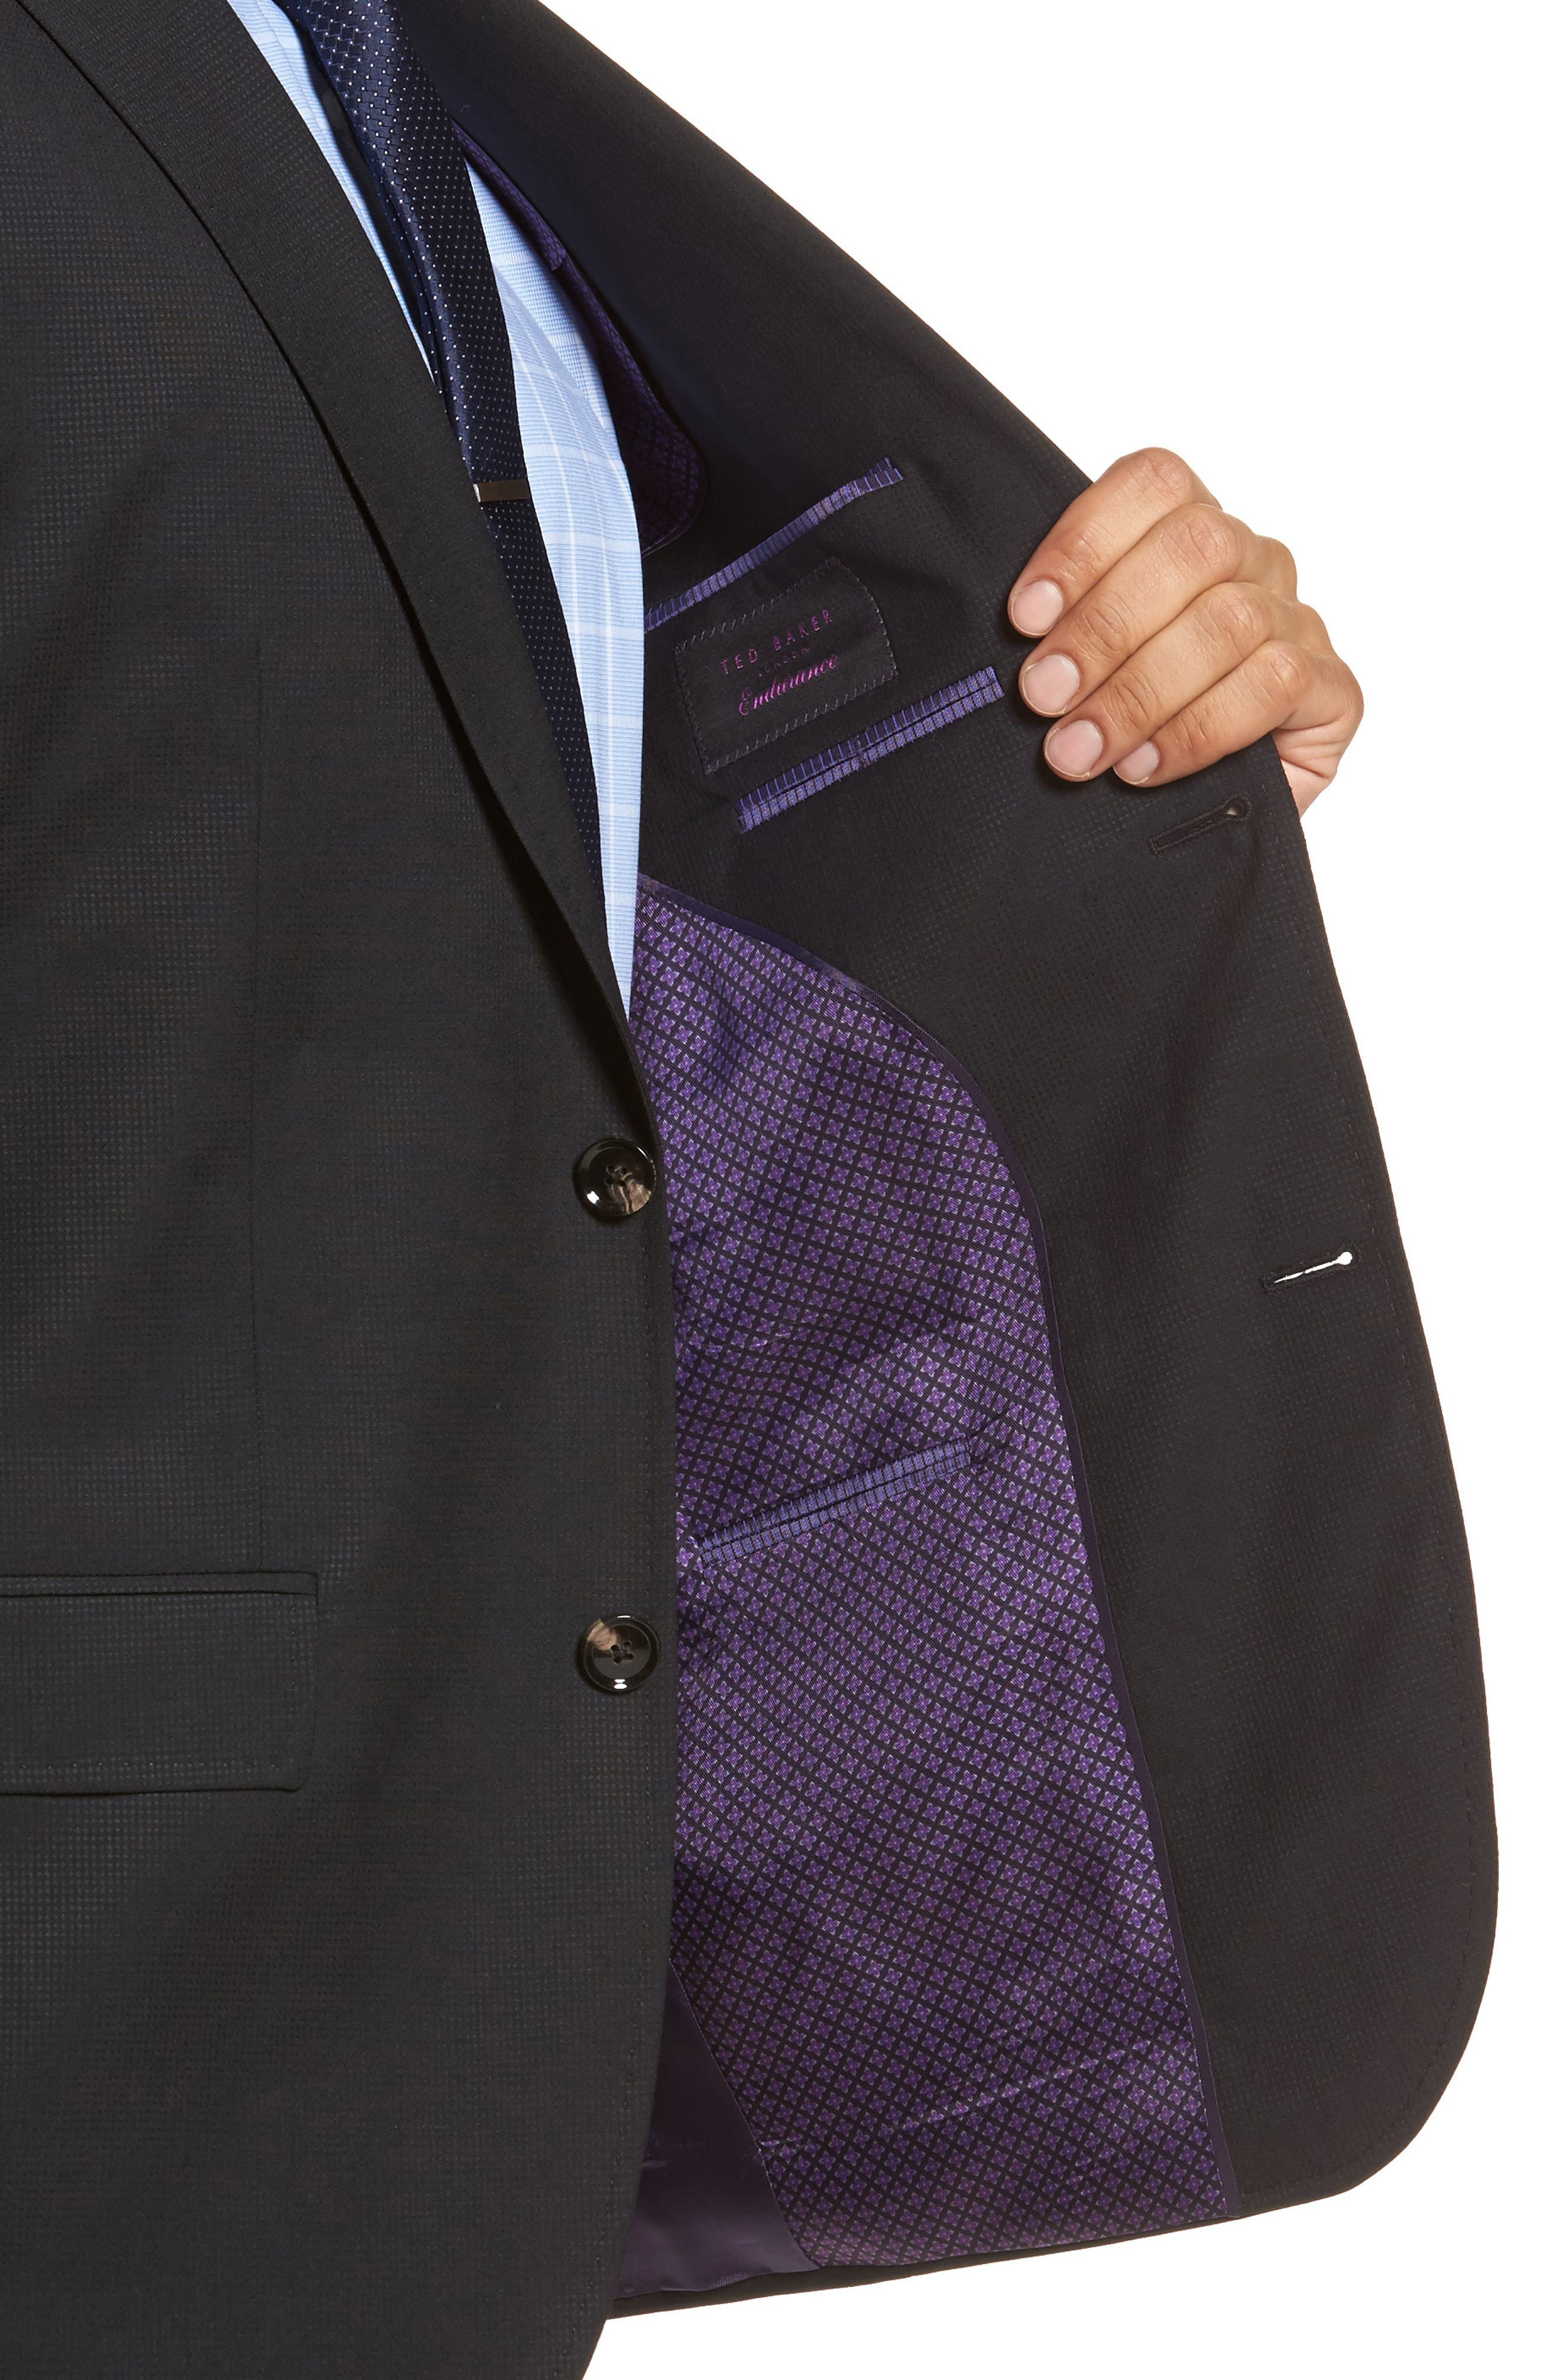 Roger Extra Slim Fit Solid Wool Suit,                             Alternate thumbnail 4, color,                             001